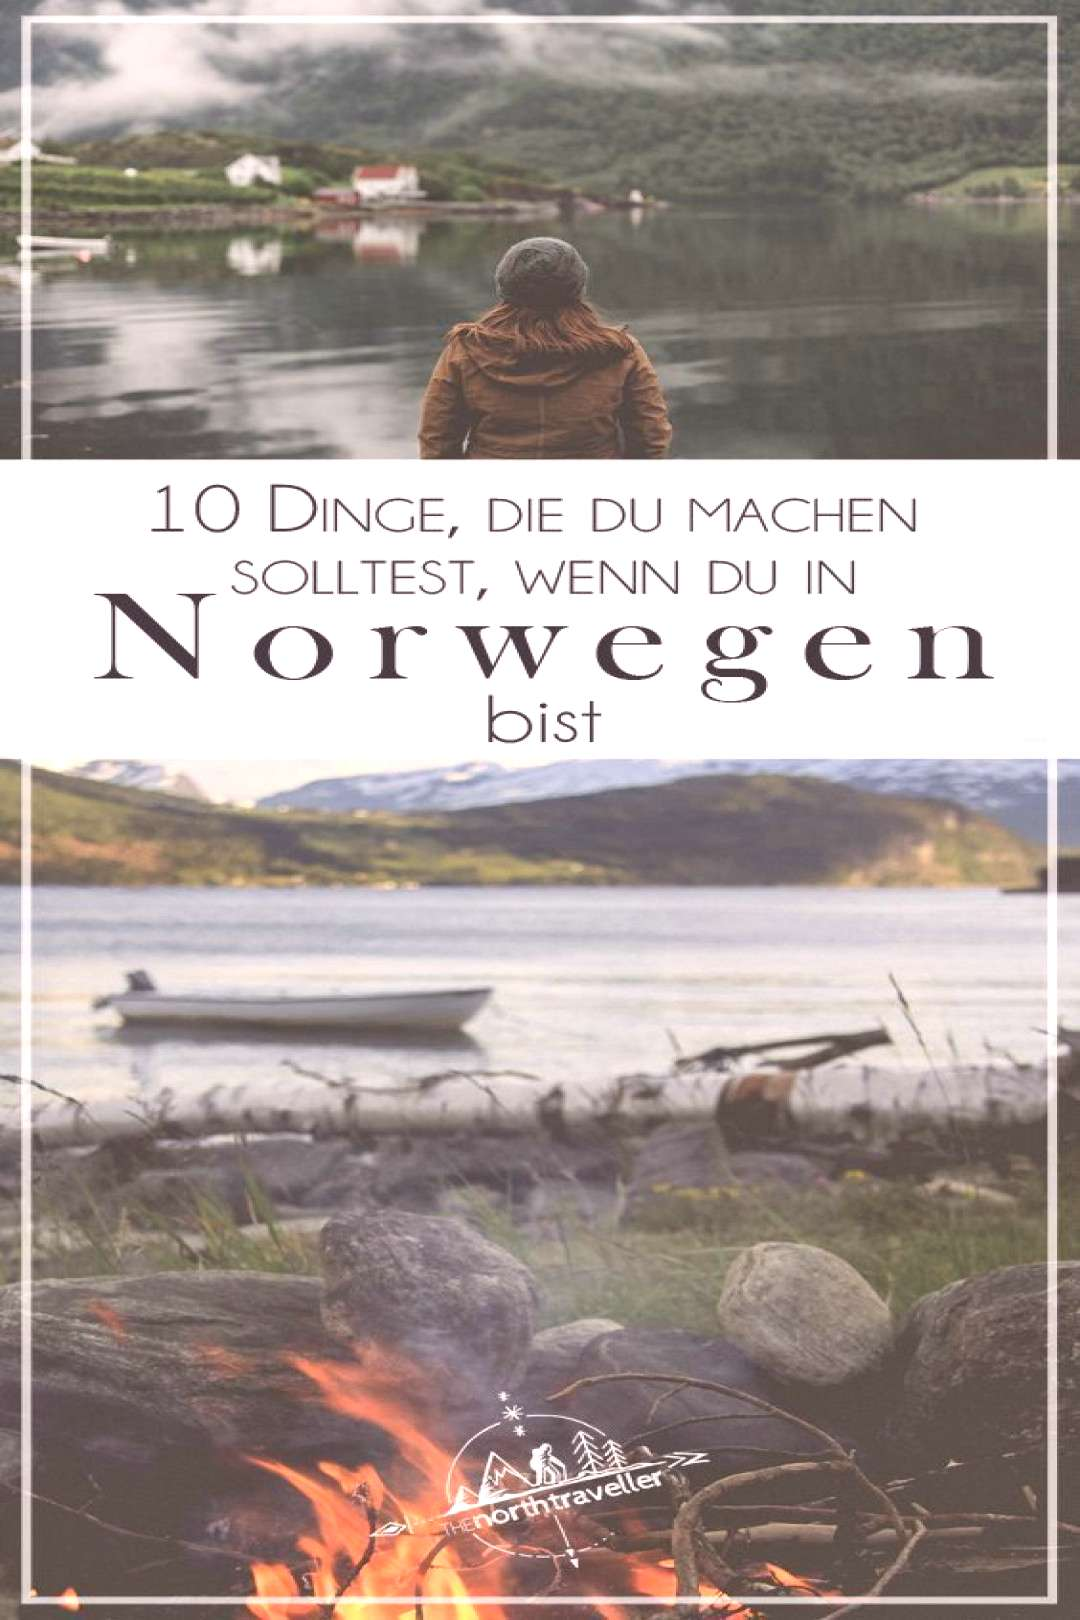 10 things you should do when you are in Norway - The Northtraveller - The blog about Norw#blog